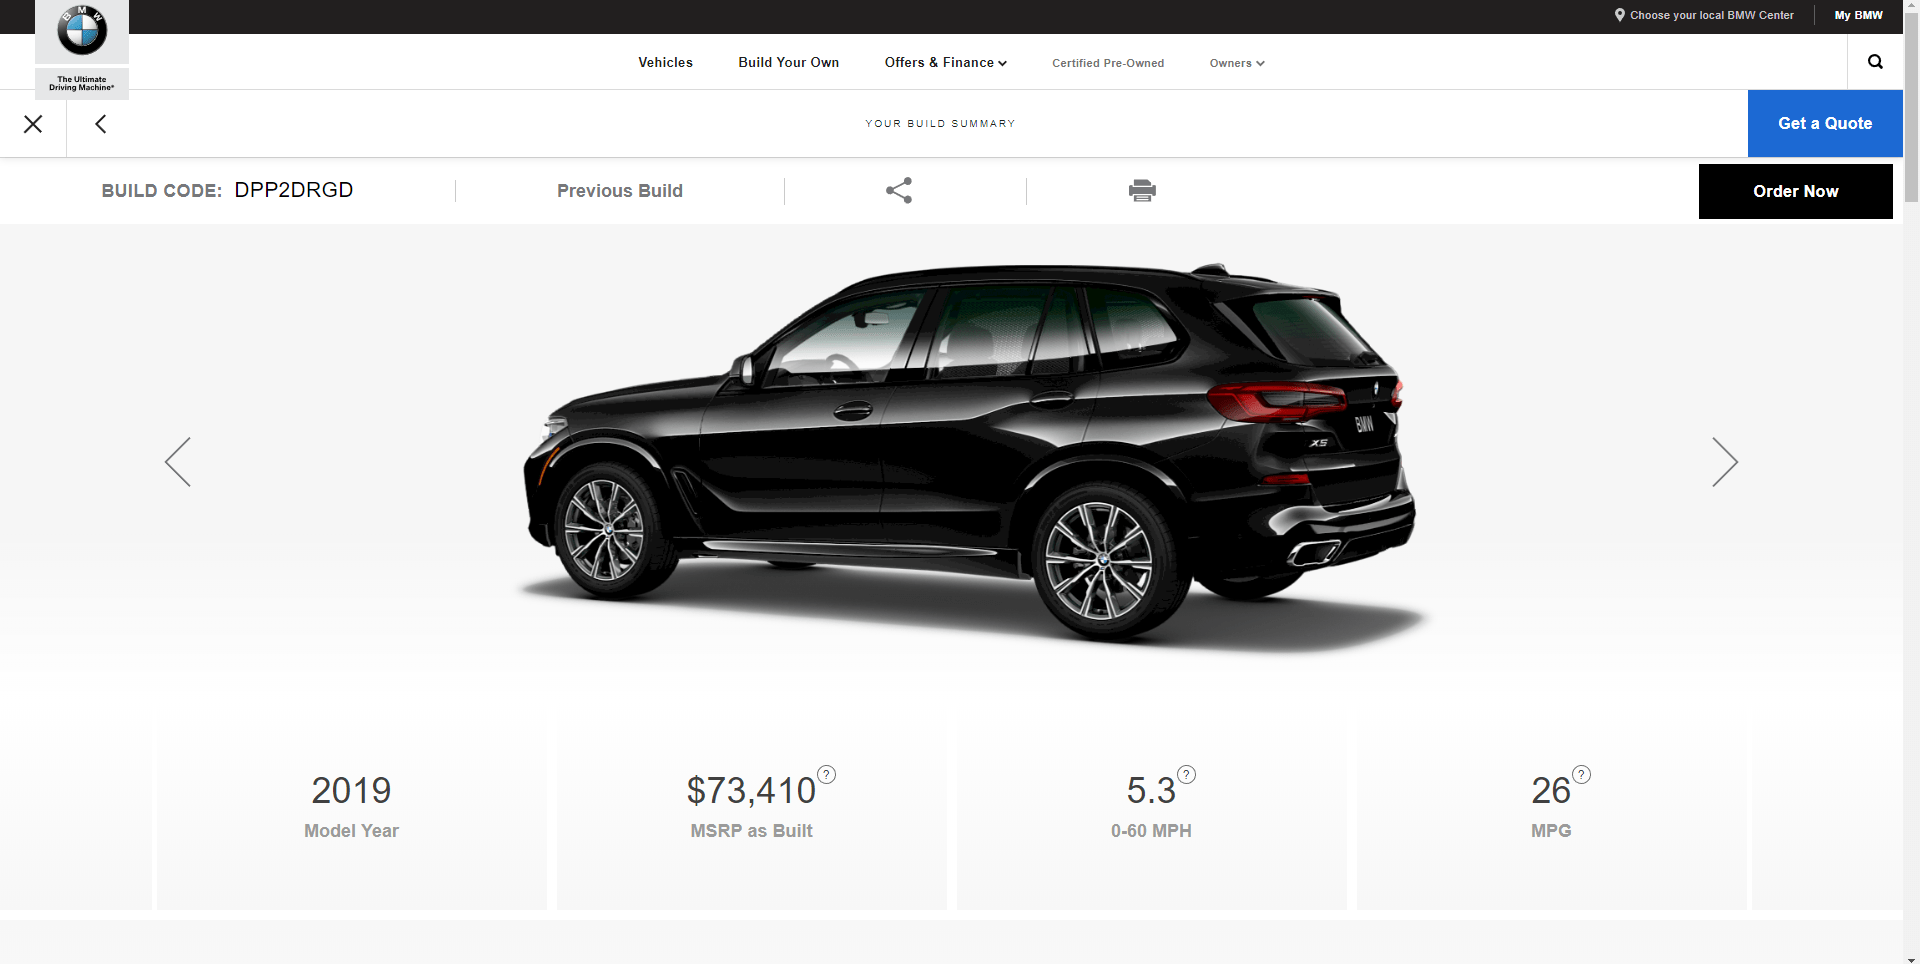 G05 Bmw X5 Configurator Goes Live On Bmwusa Website